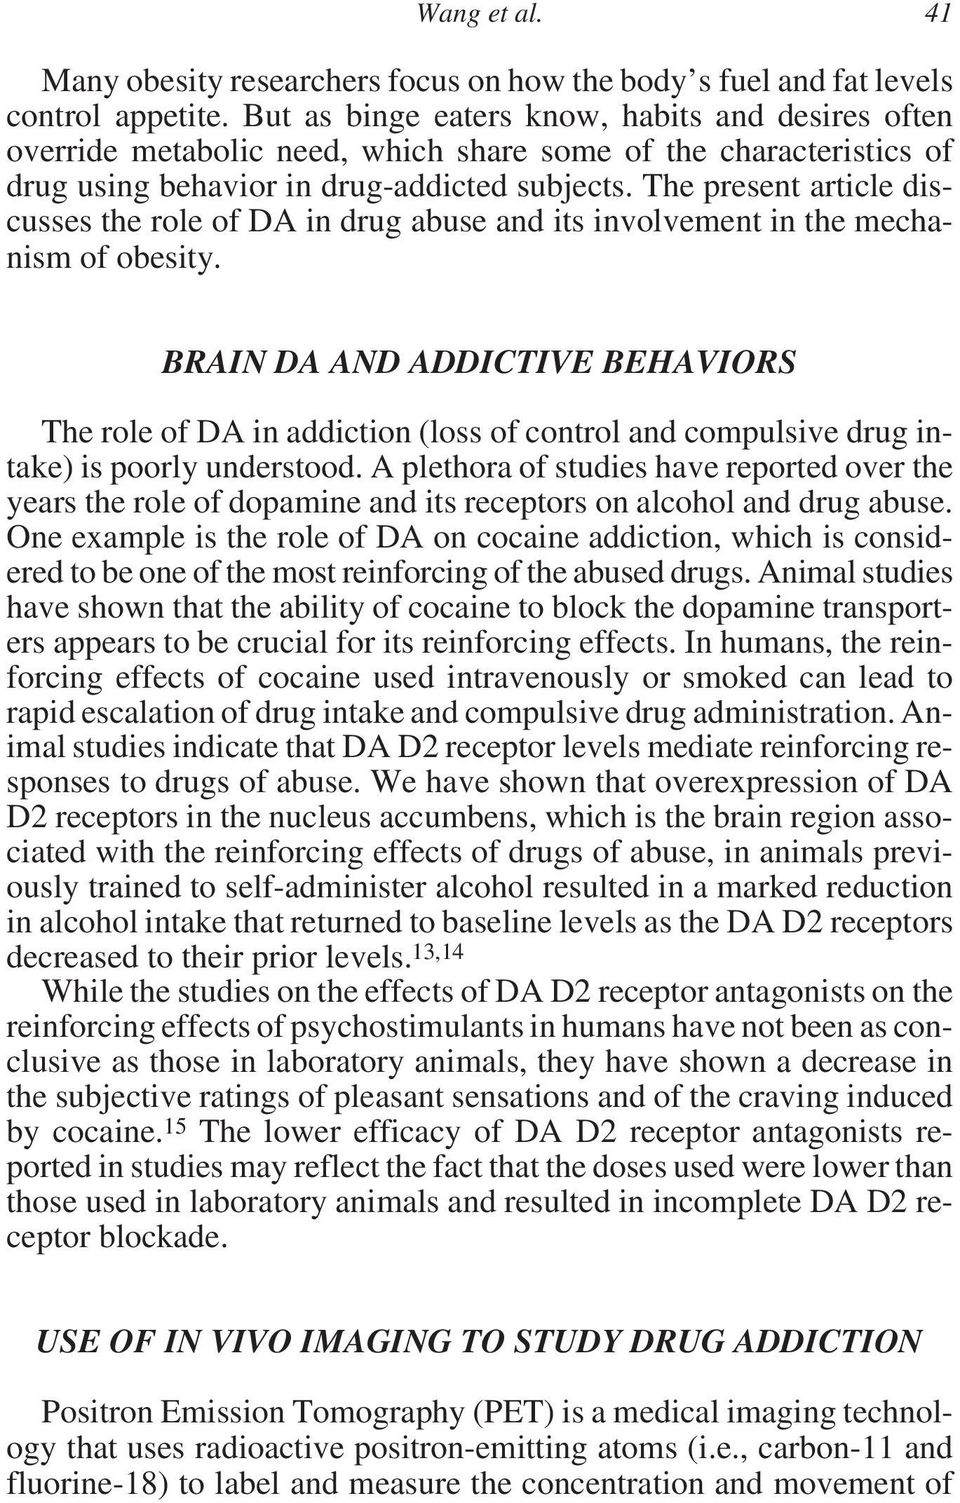 The present article discusses the role of DA in drug abuse and its involvement in the mechanism of obesity.